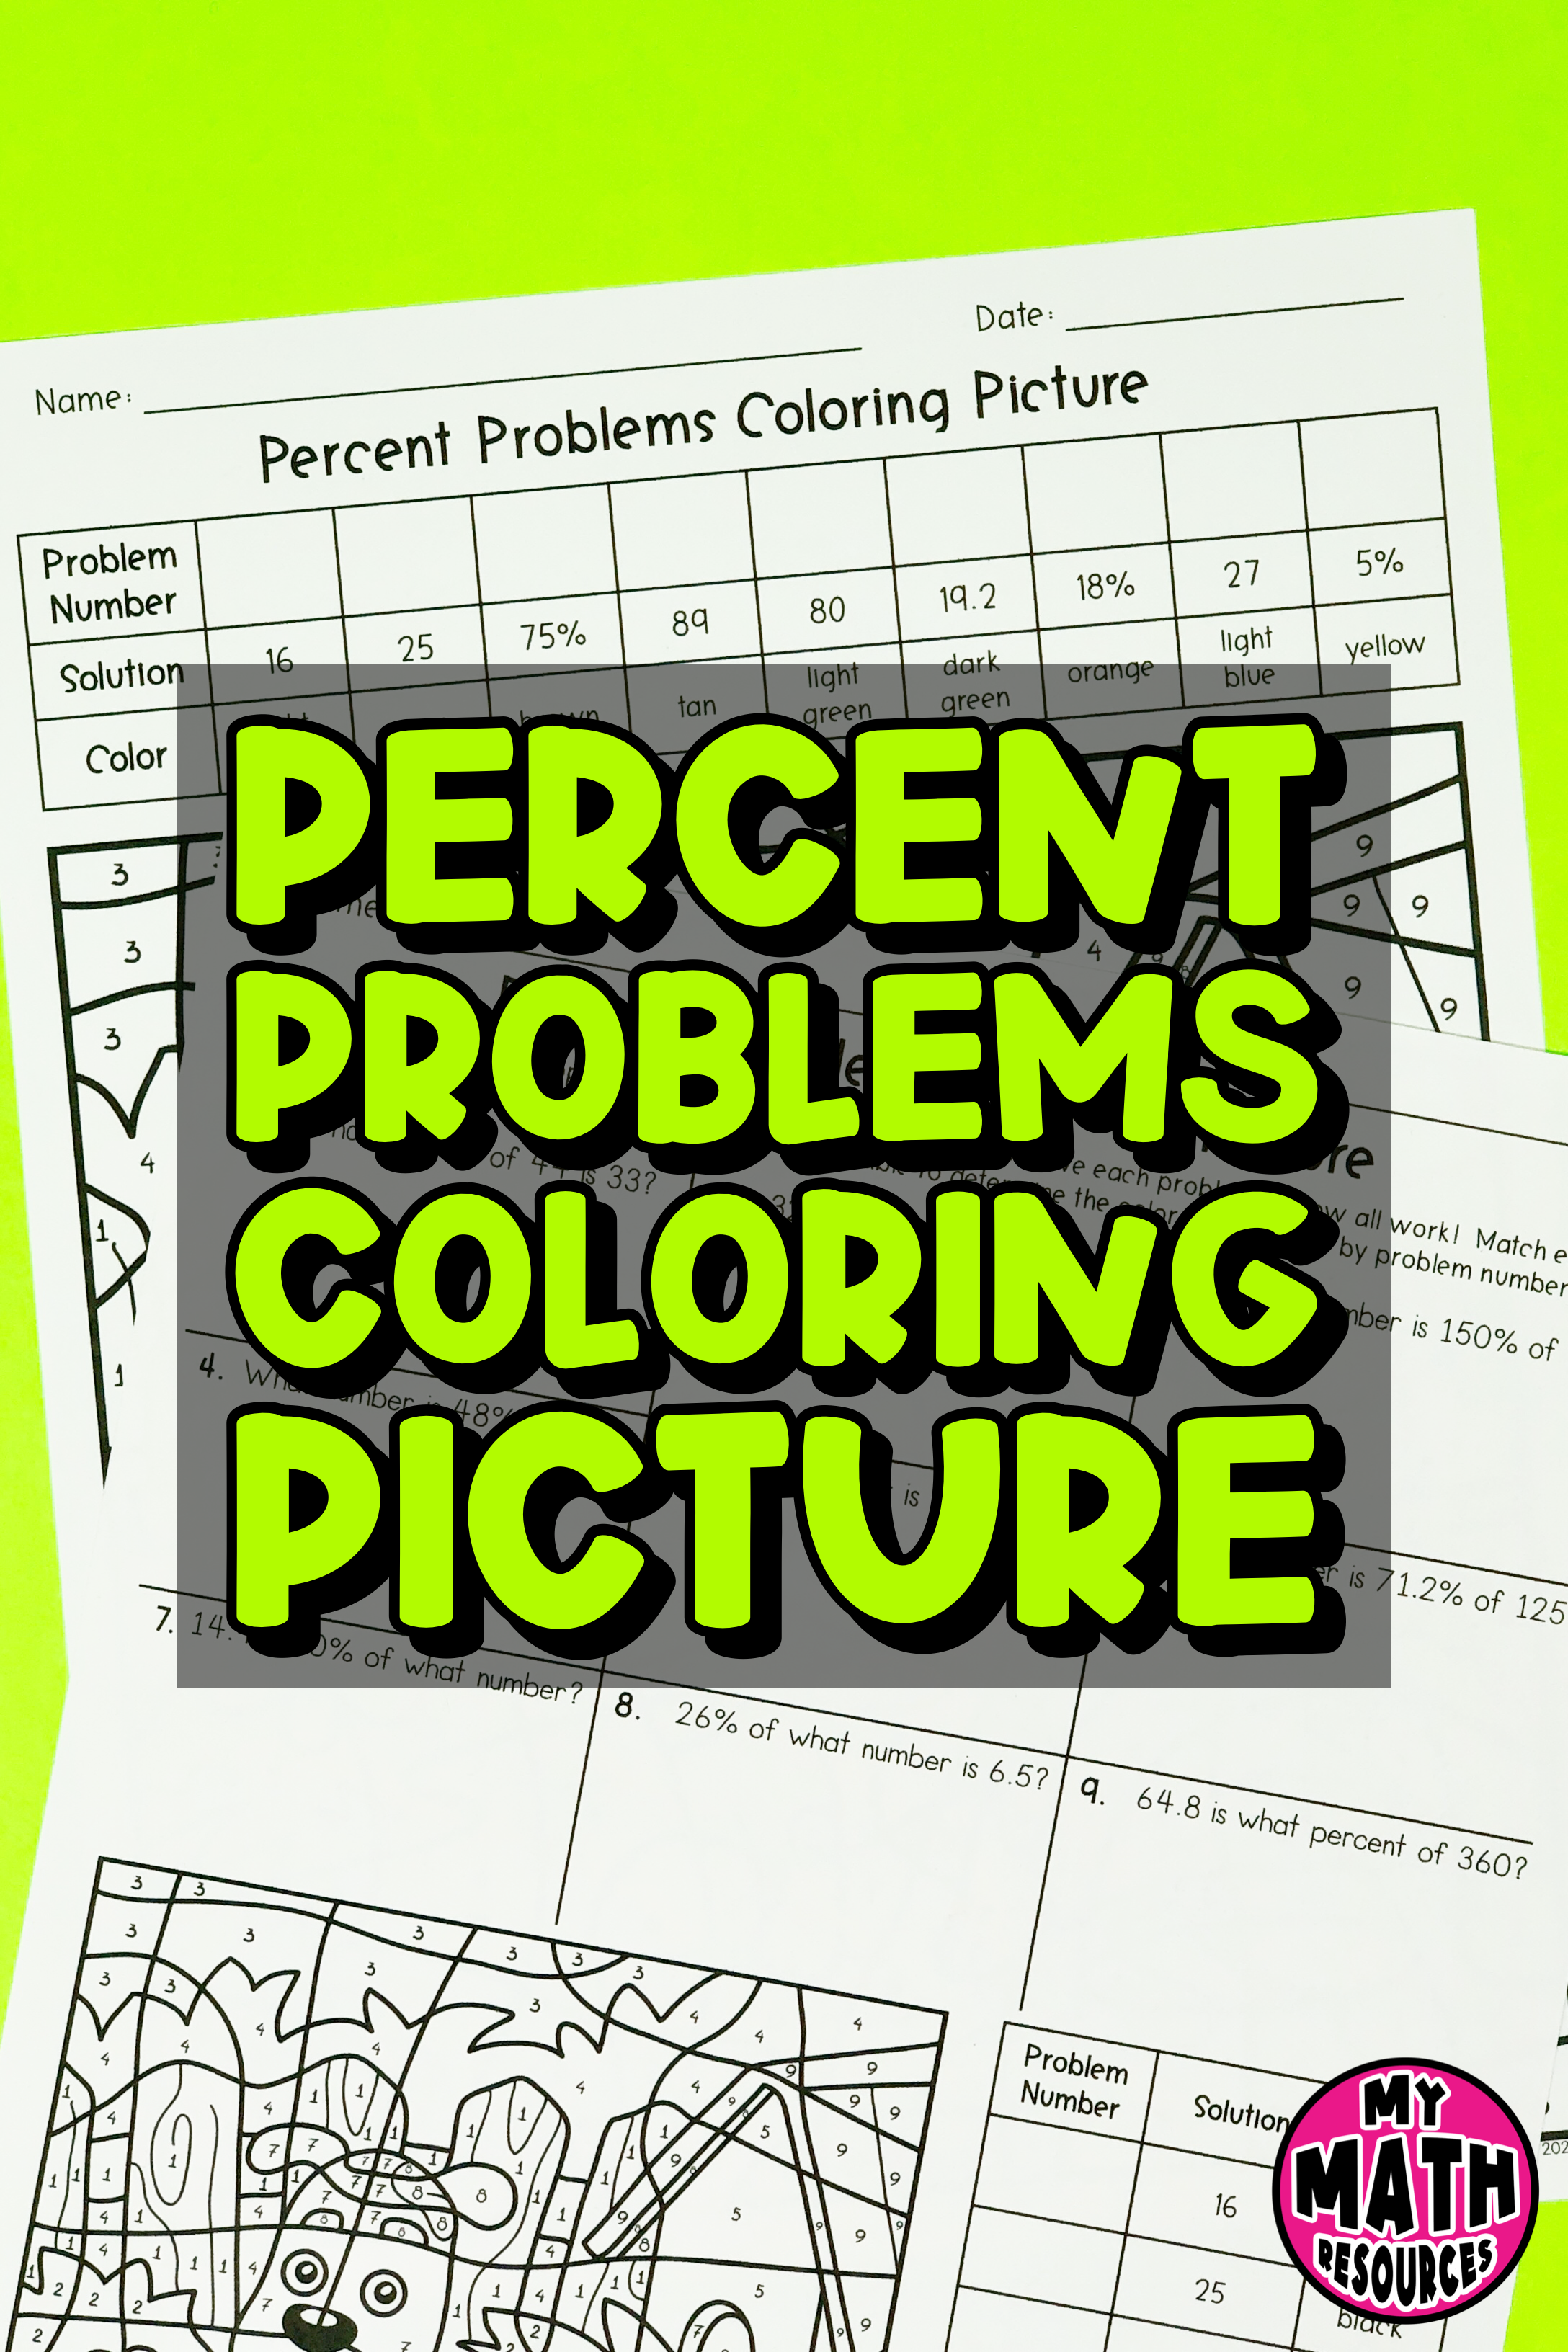 My Math Resources - Percent Problems Coloring Picture Worksheet   7th grade  math worksheets [ 3264 x 2176 Pixel ]